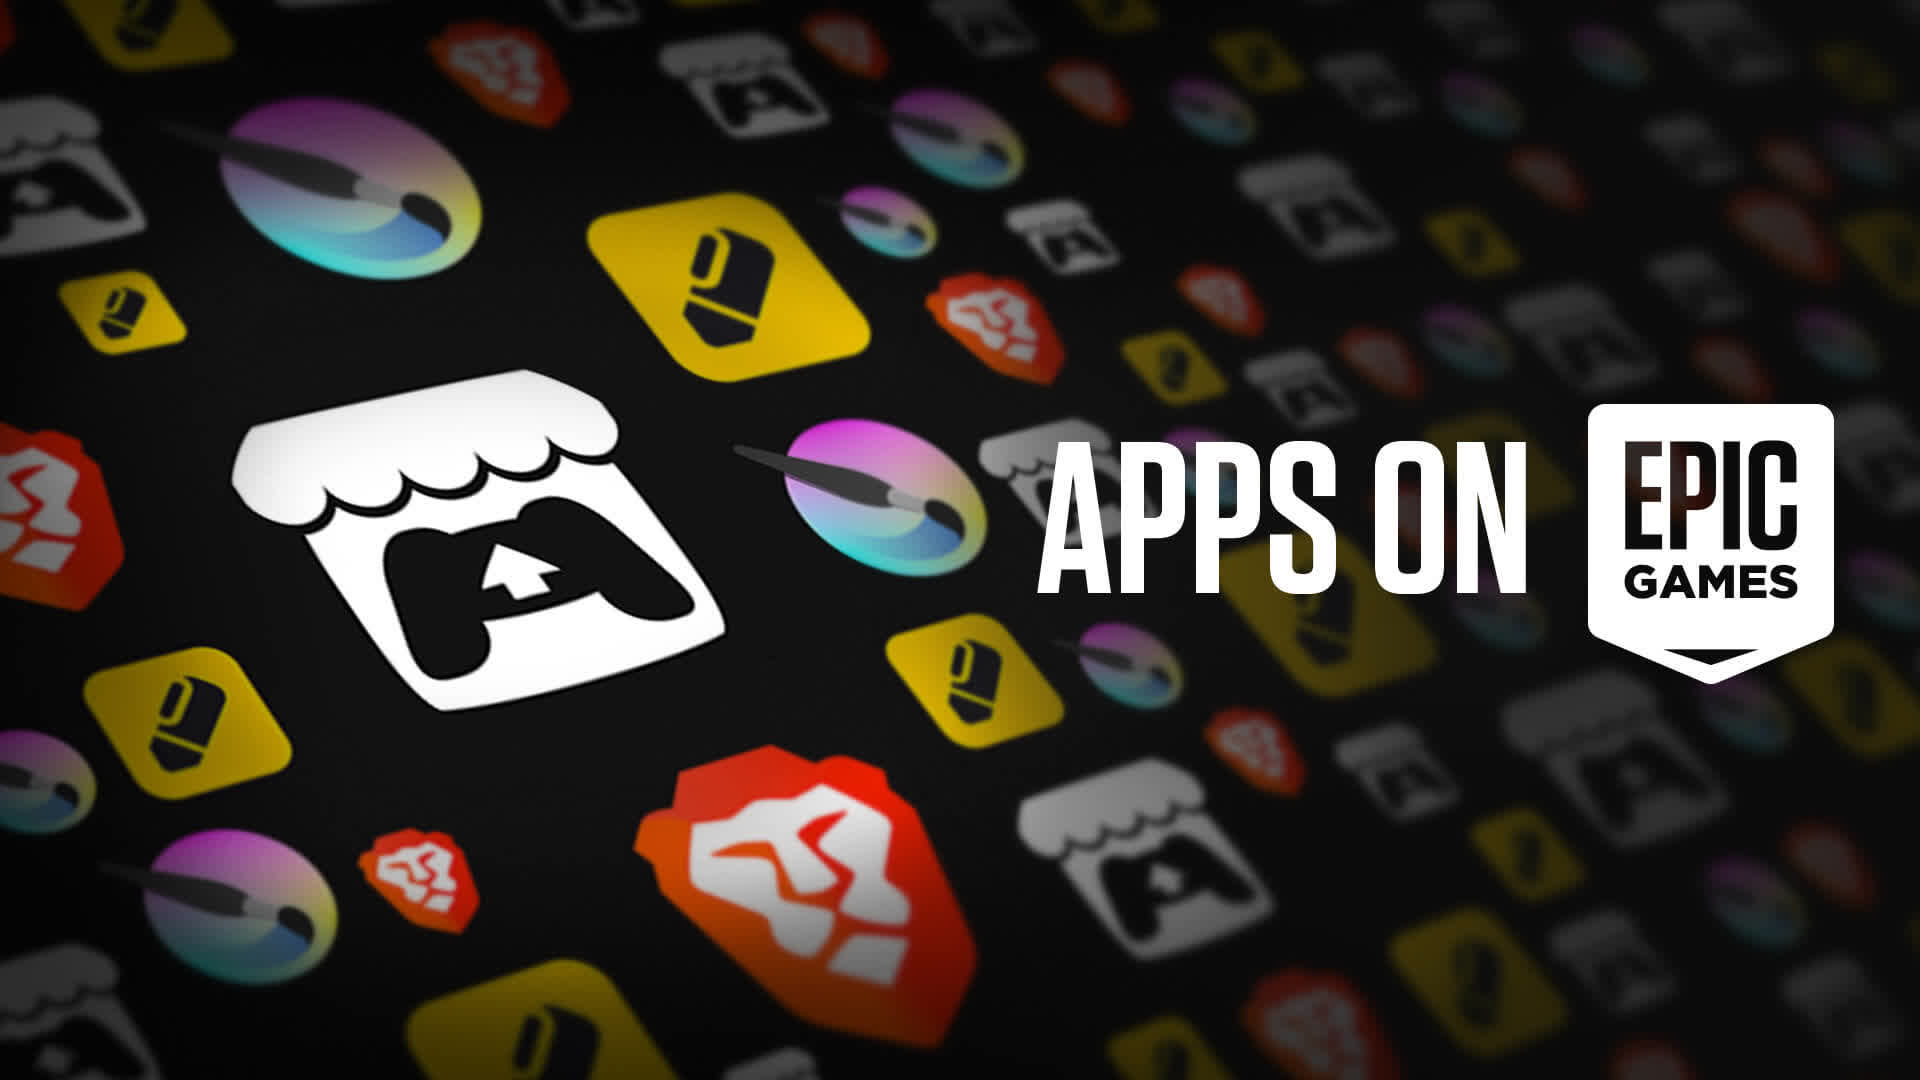 Epic Games Store introduces new PC apps for its users